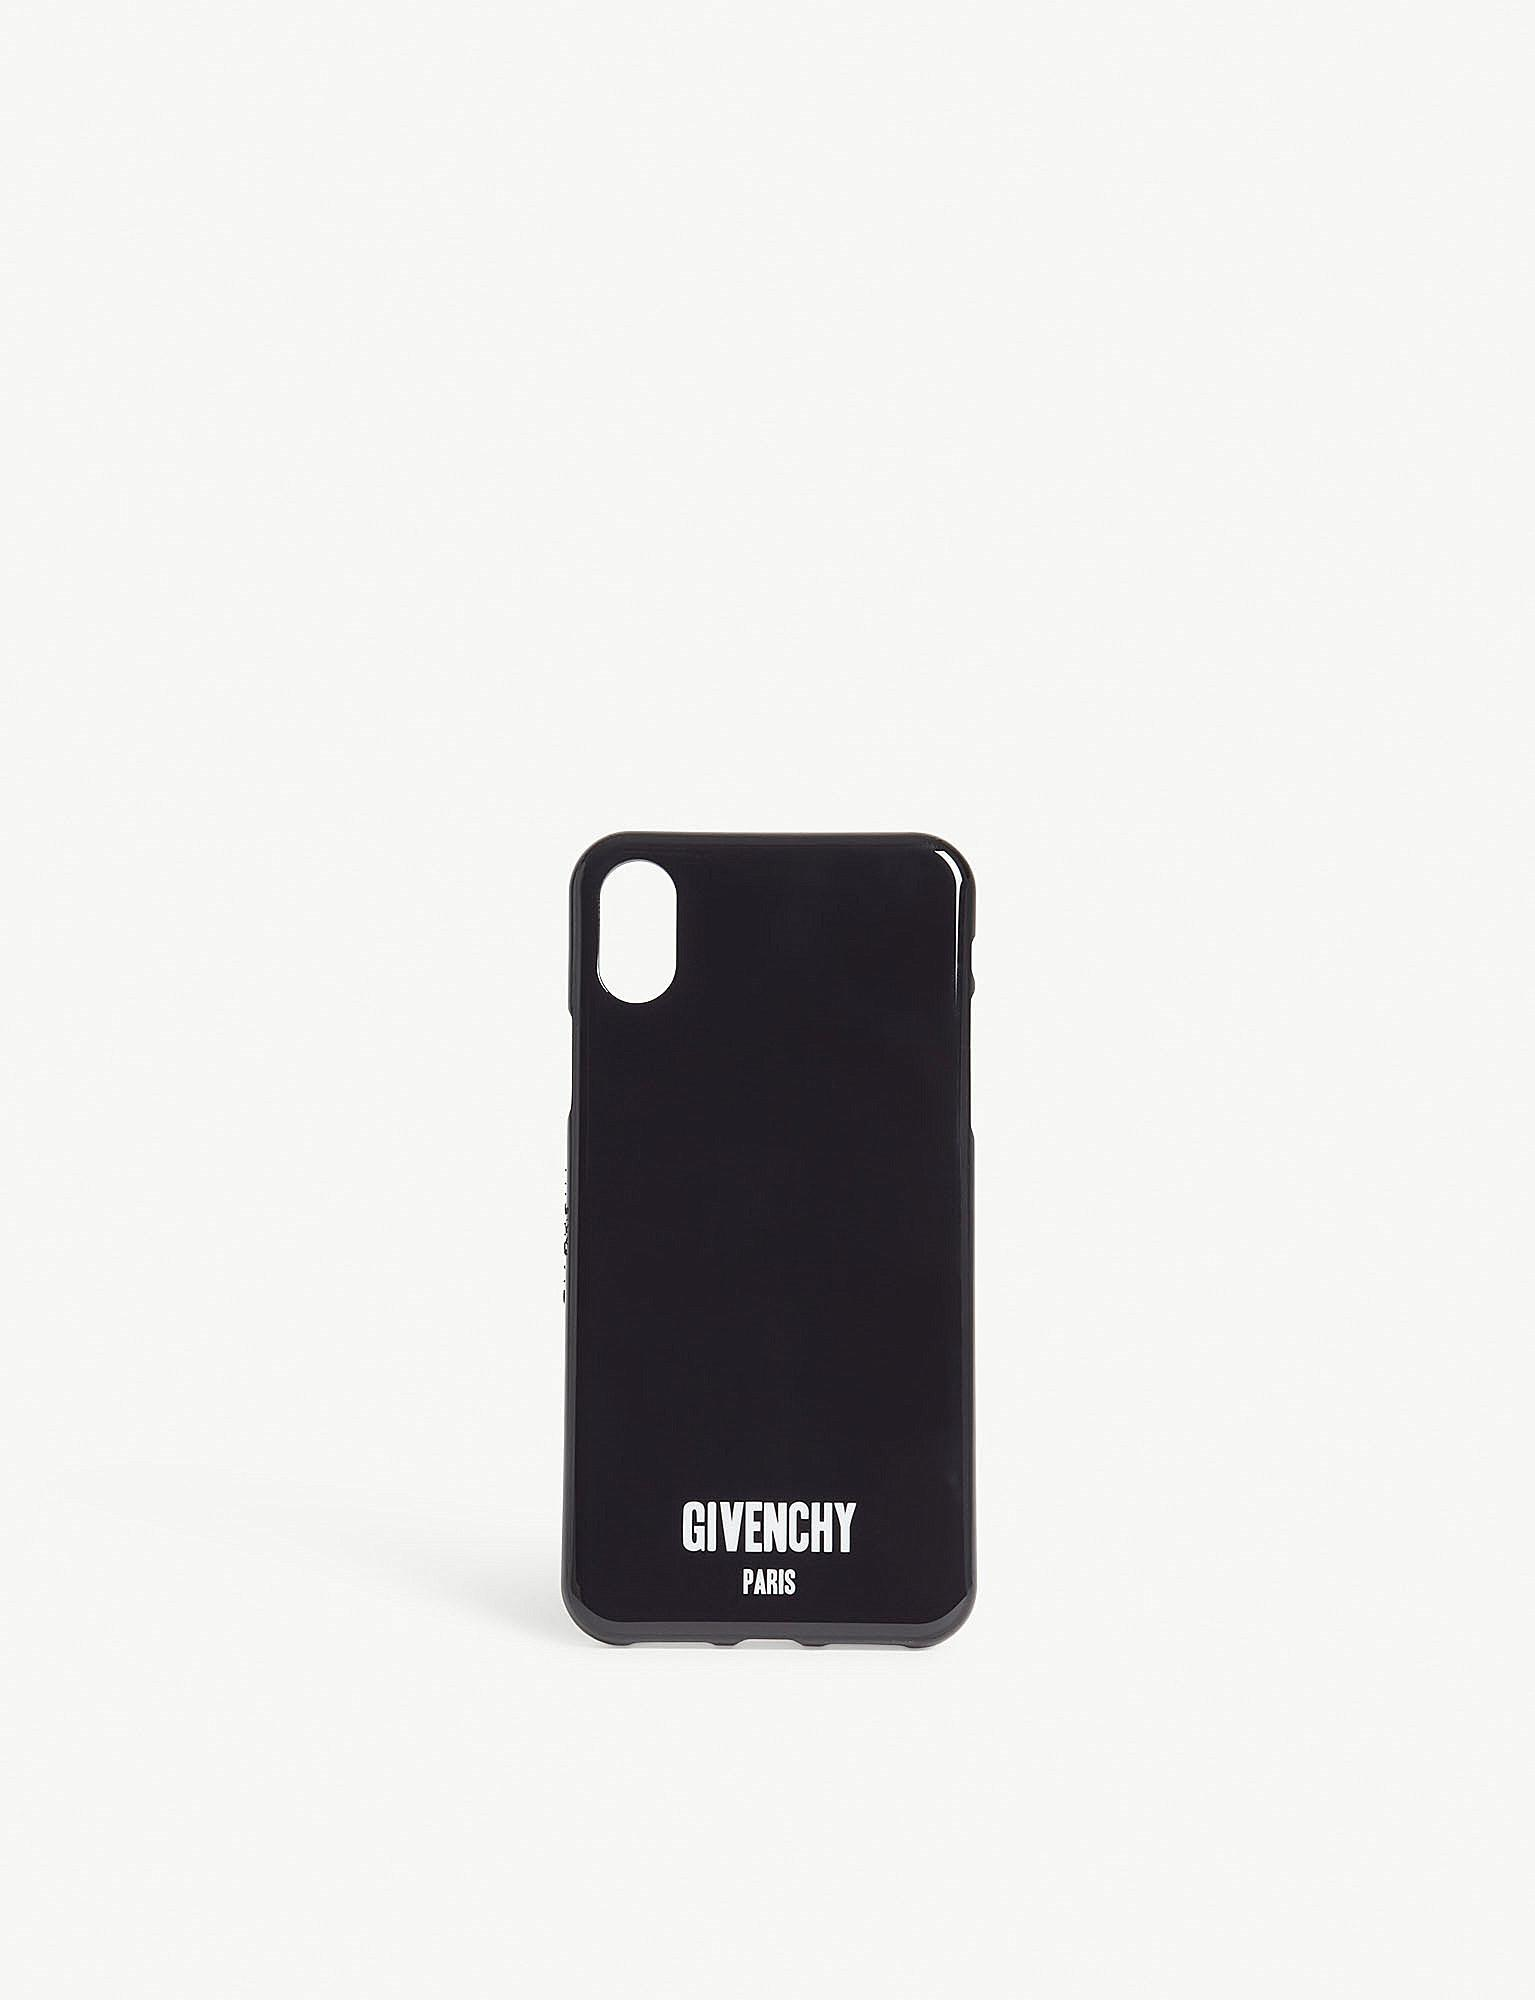 givenchy iphone 8 plus case